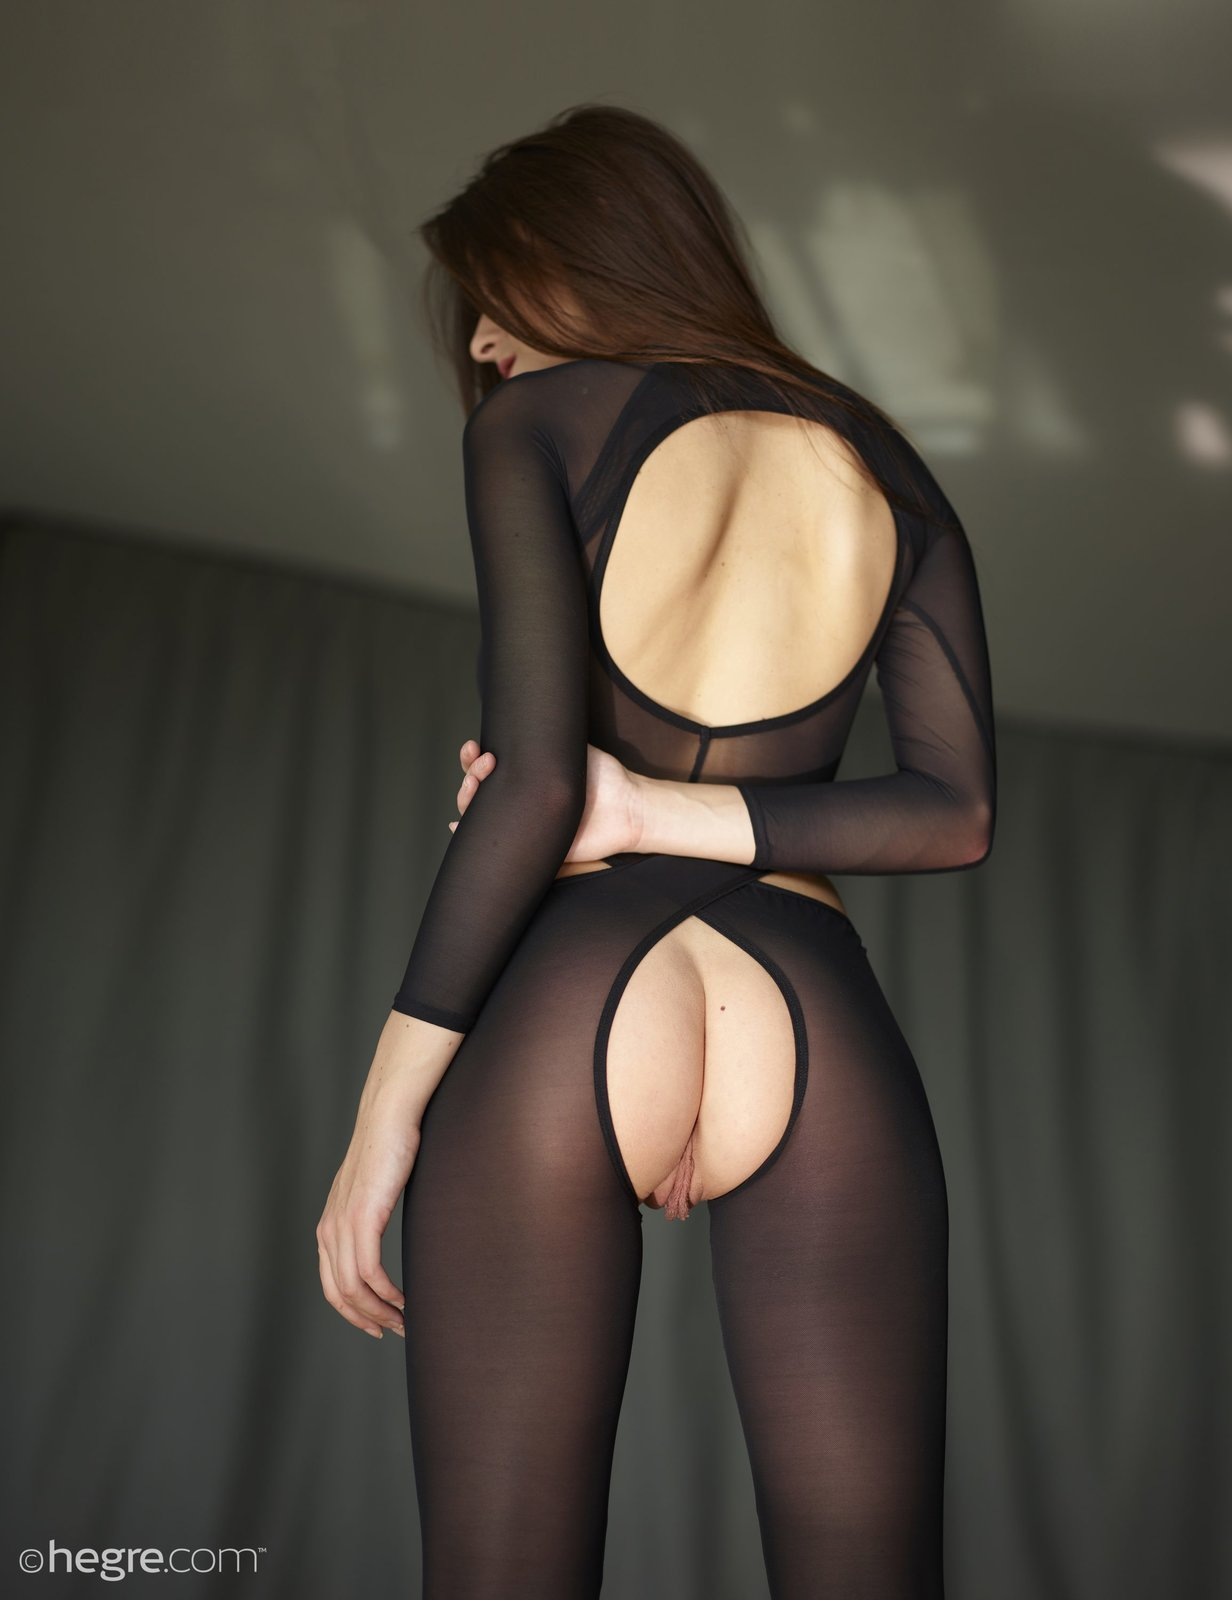 Suited sex